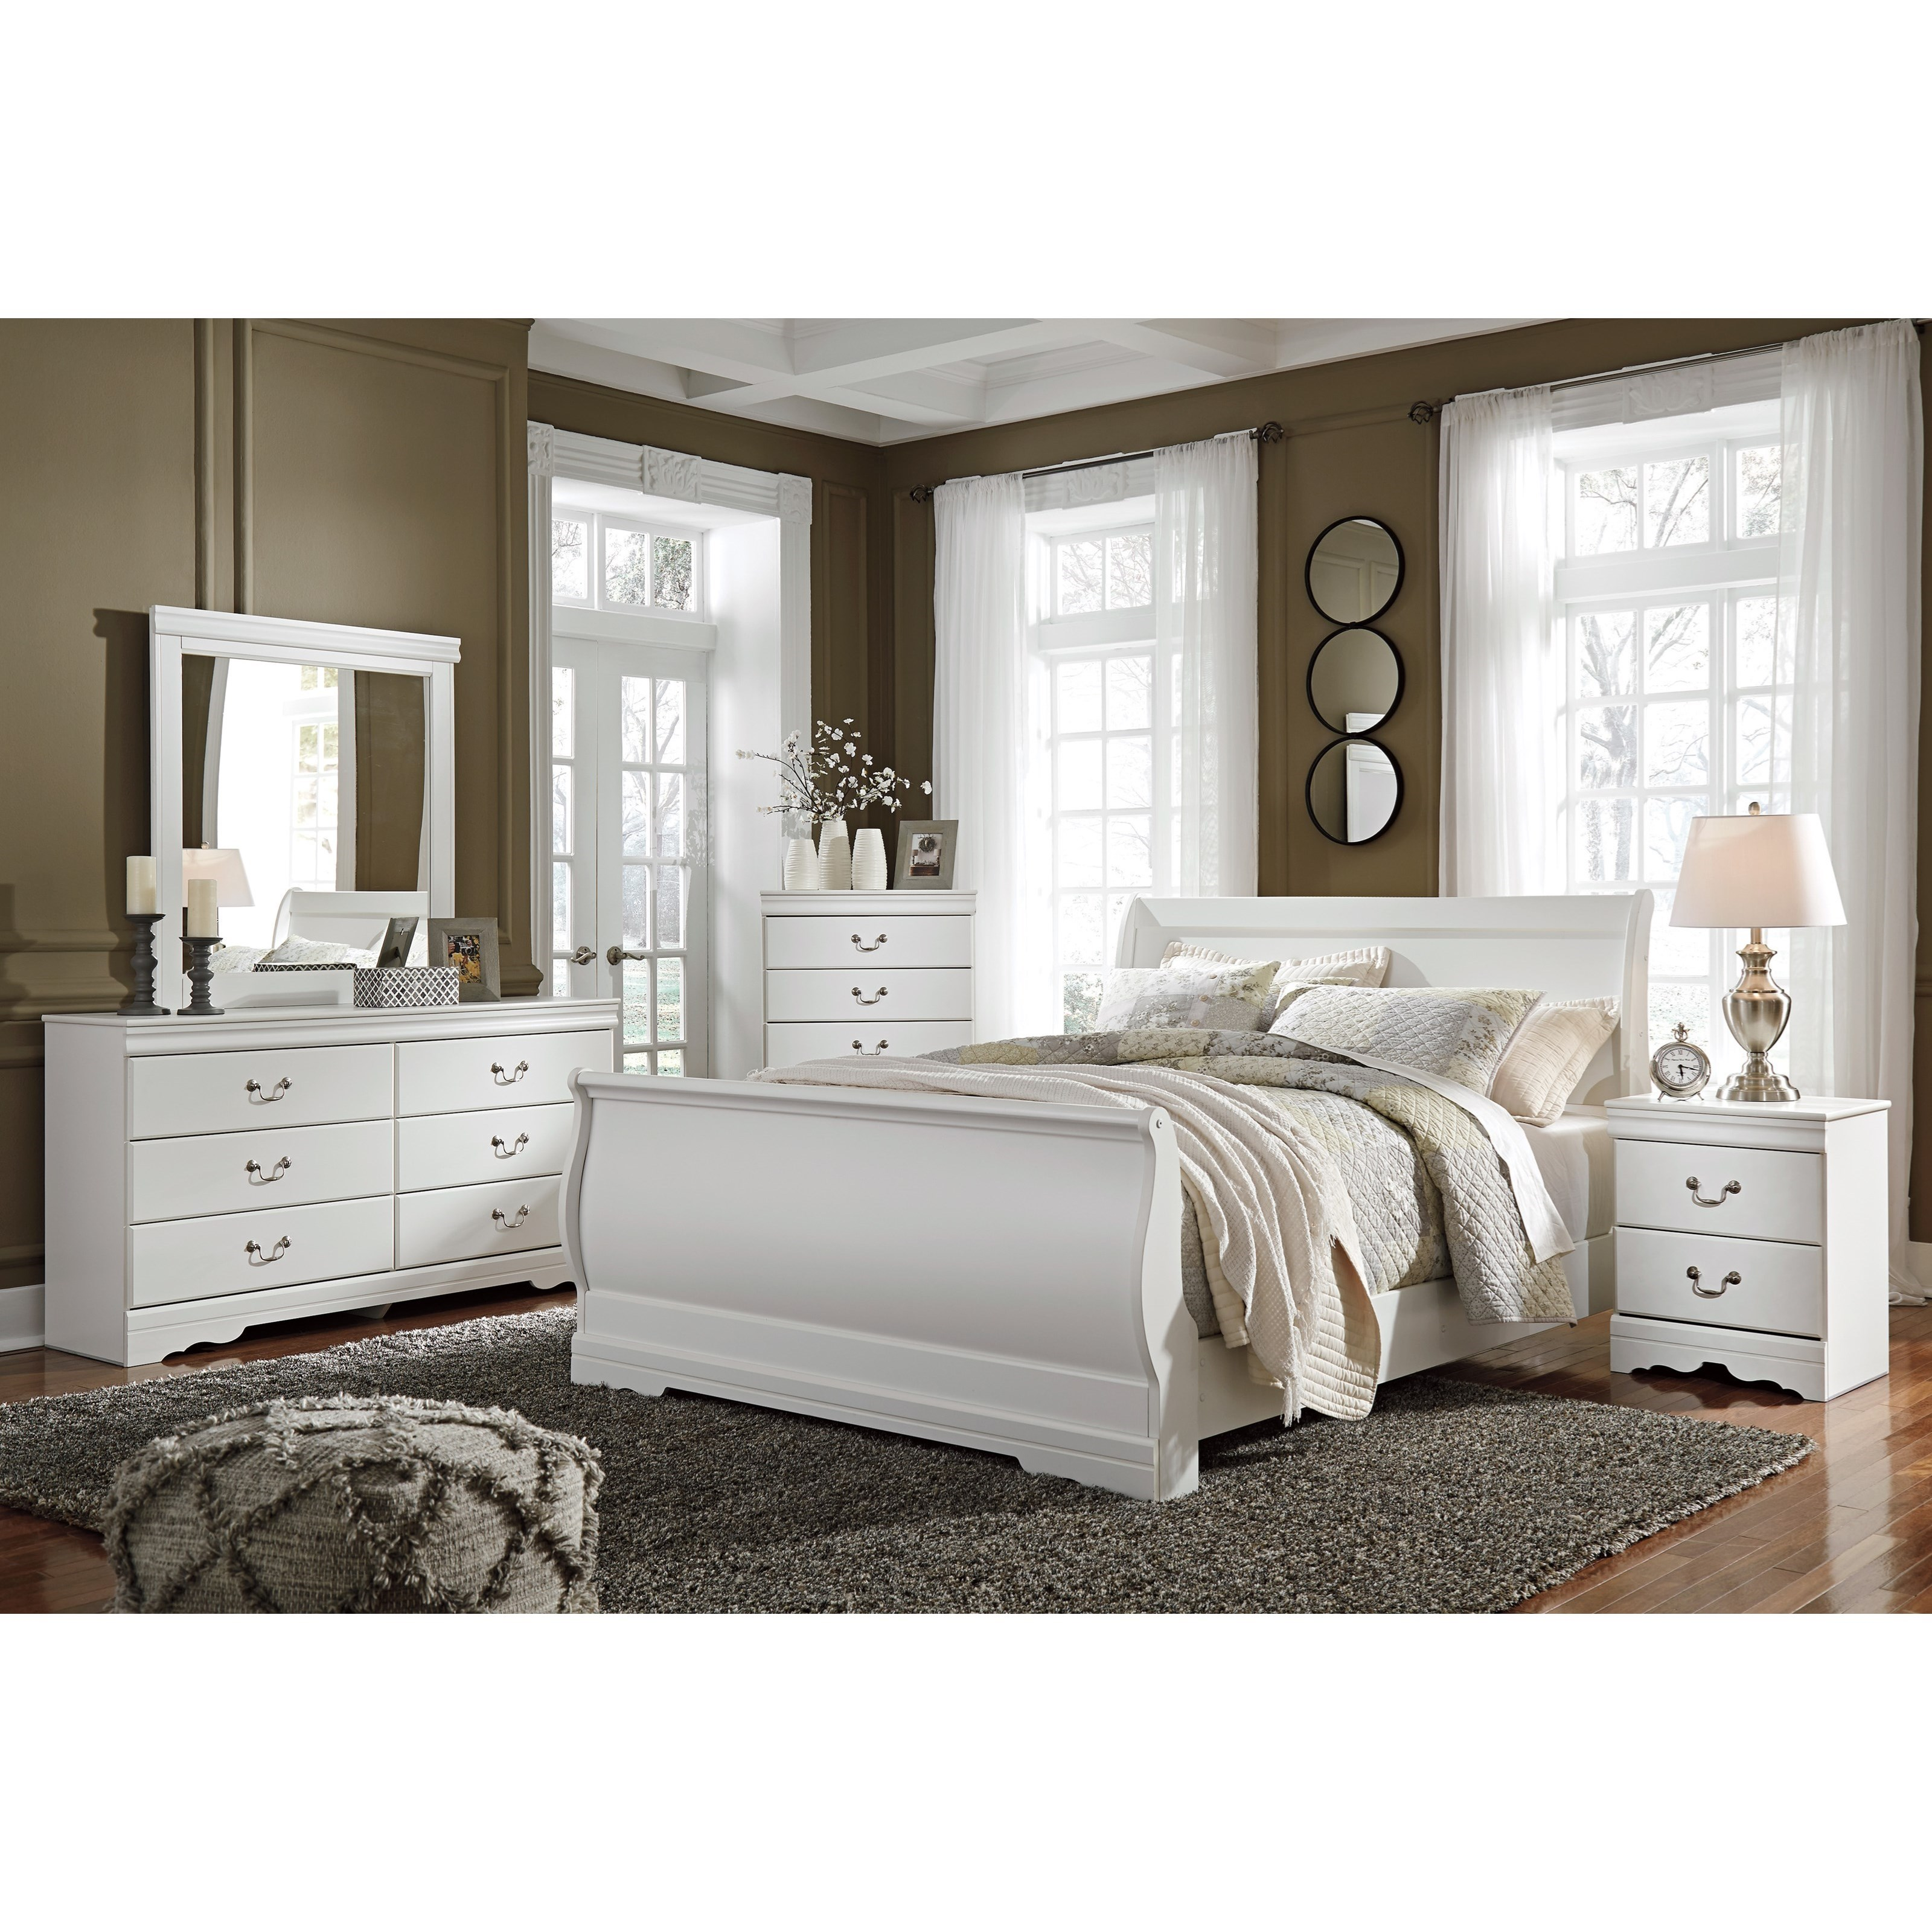 Signature Design by Ashley Anarasia Queen Bedroom Group